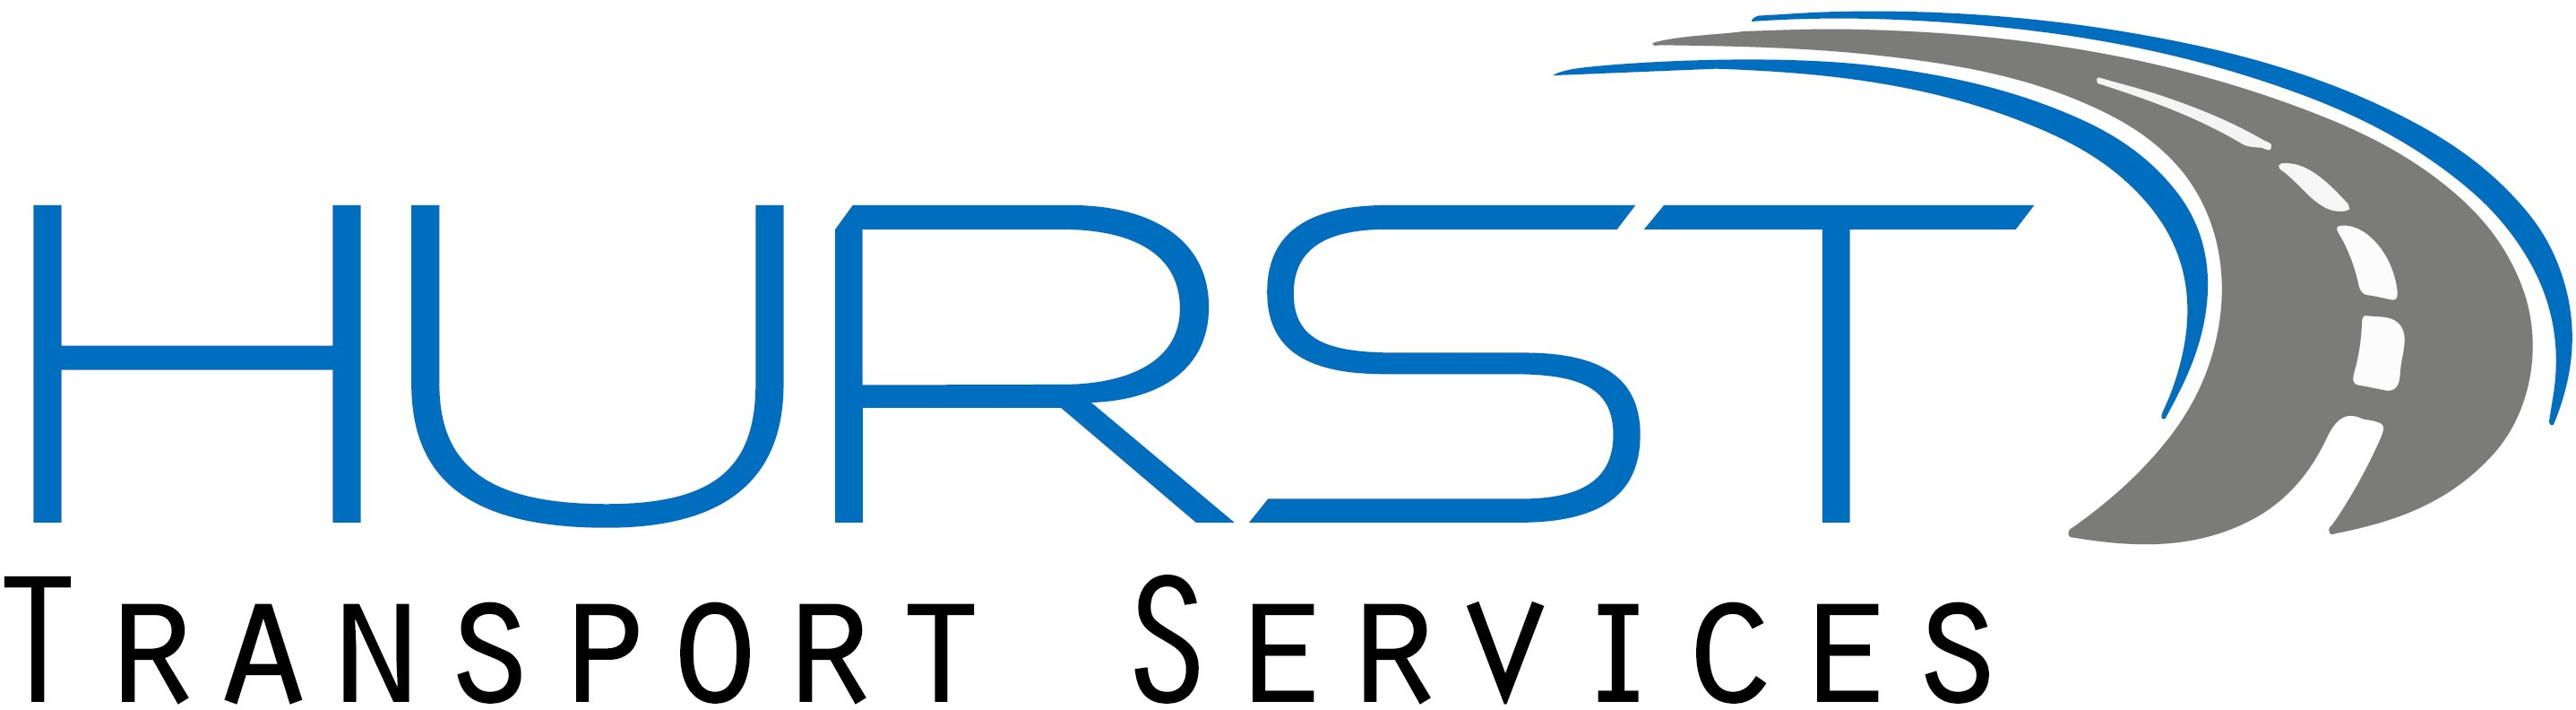 Hurst Transport Services logo